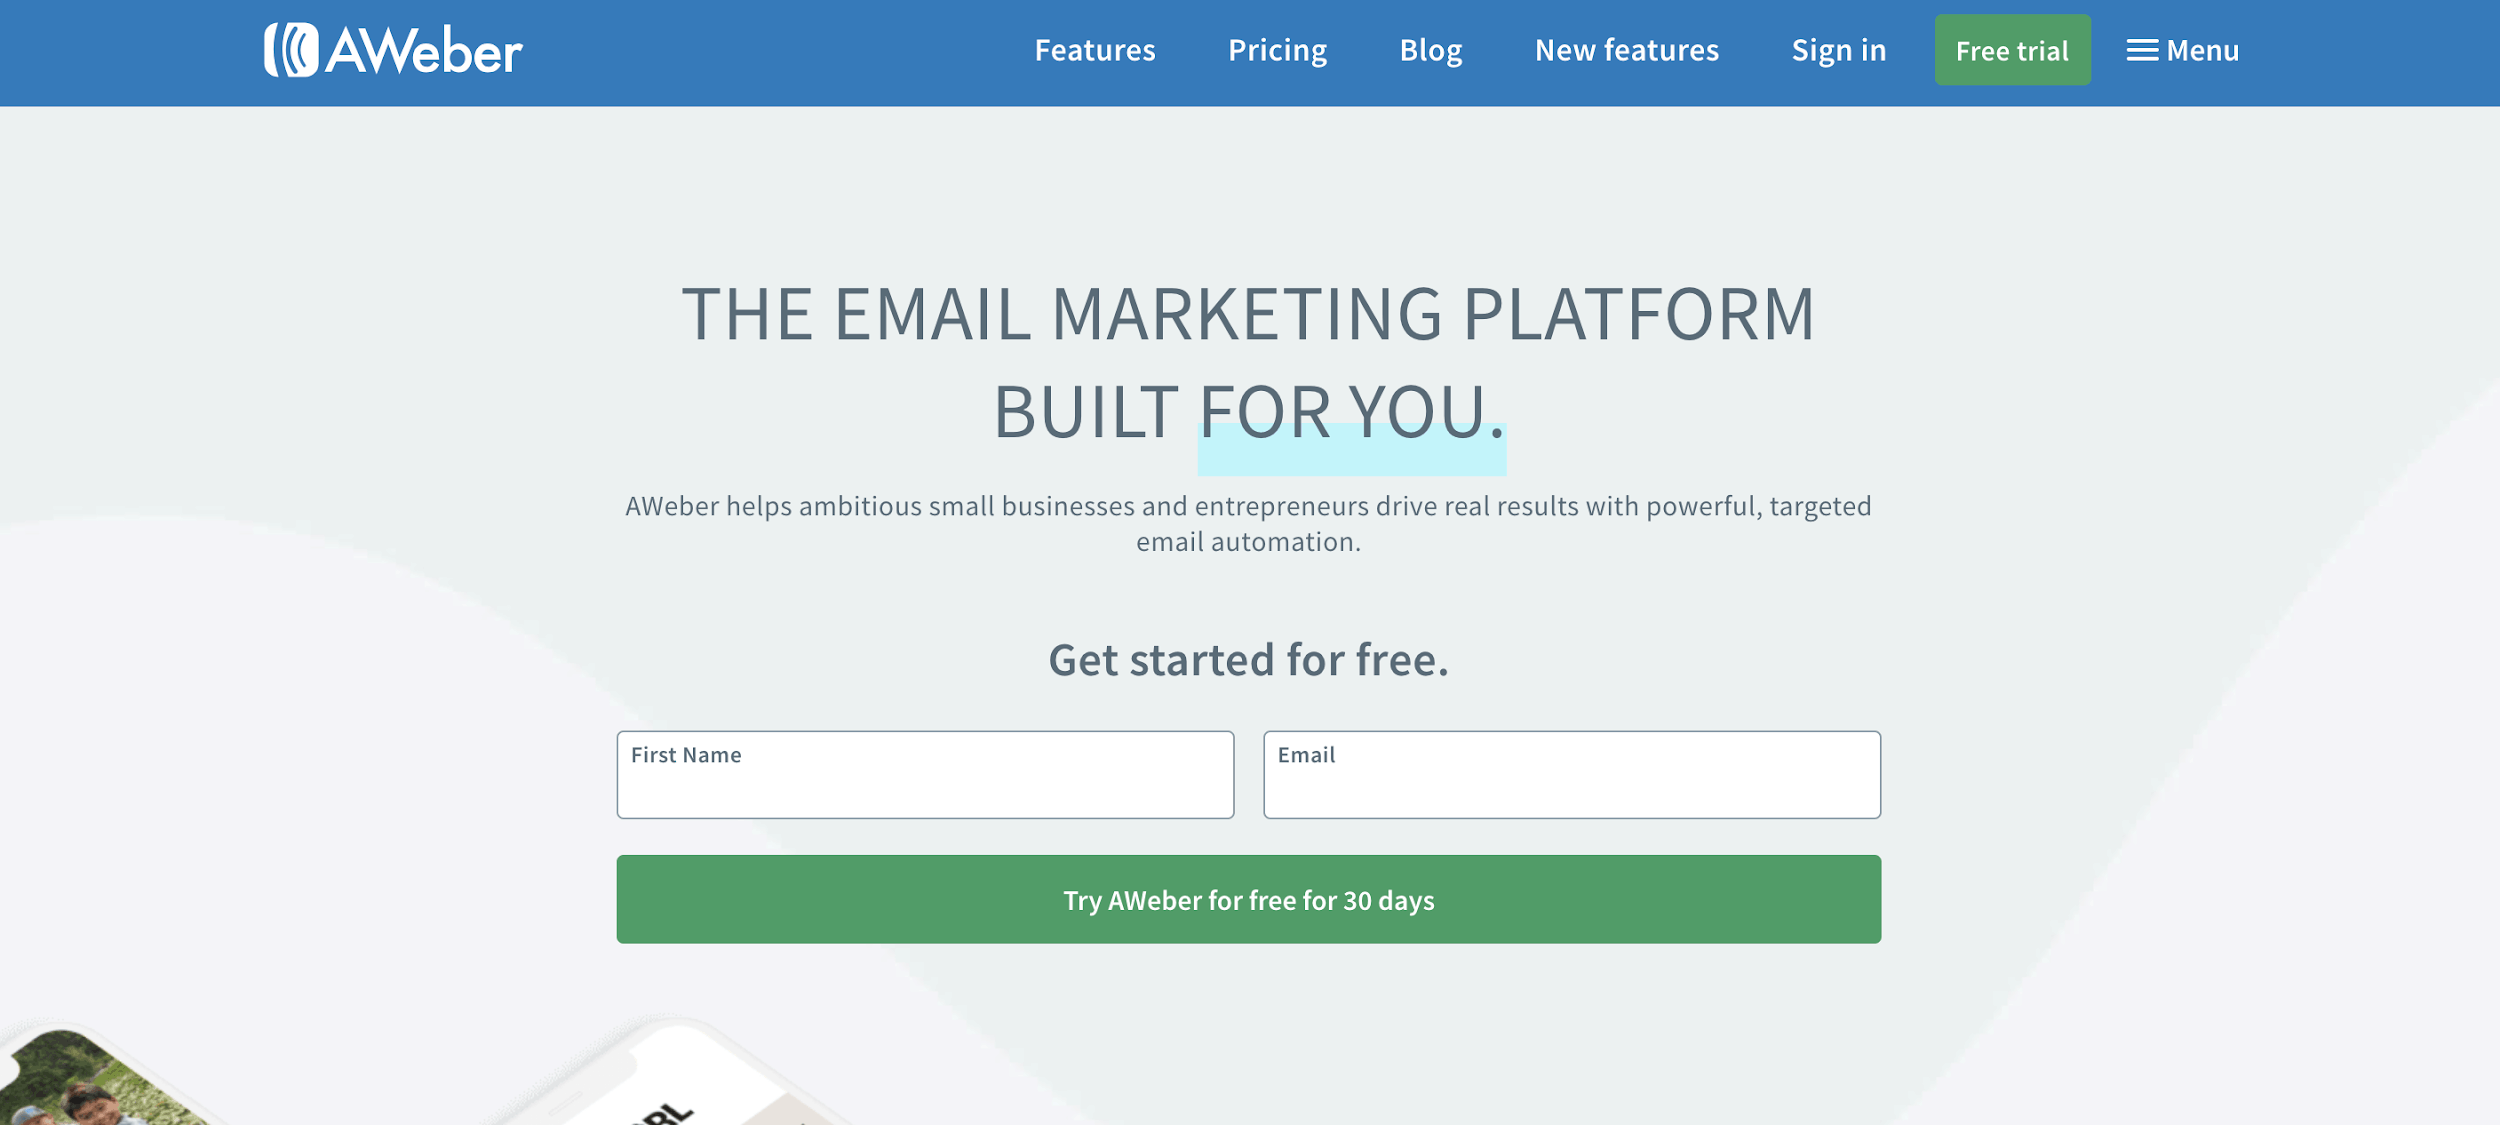 7 Best Email Marketing Services with Free Trials-image4